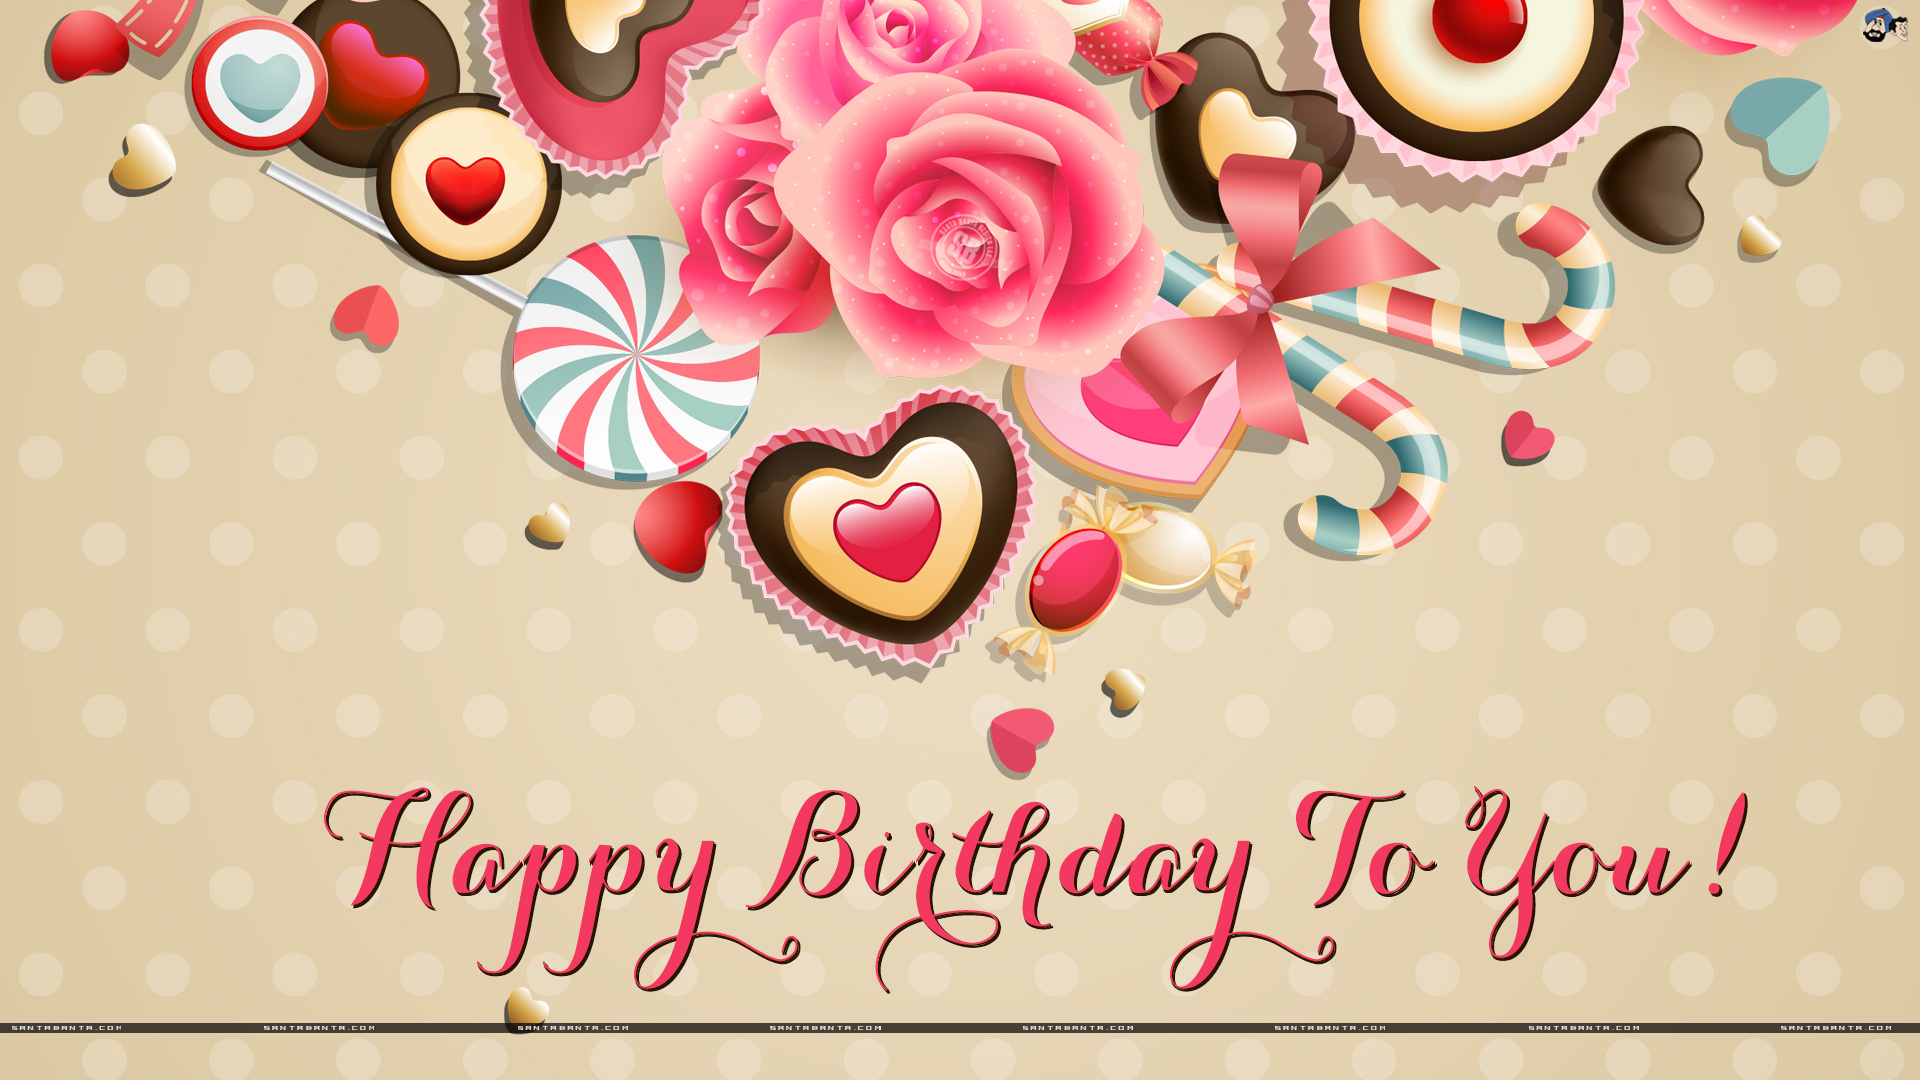 birthday wishes to wife greeting cards ; genuine-and-thoughtful-birthday-wishes-that-can-bring-happiness-to-your-wife-1